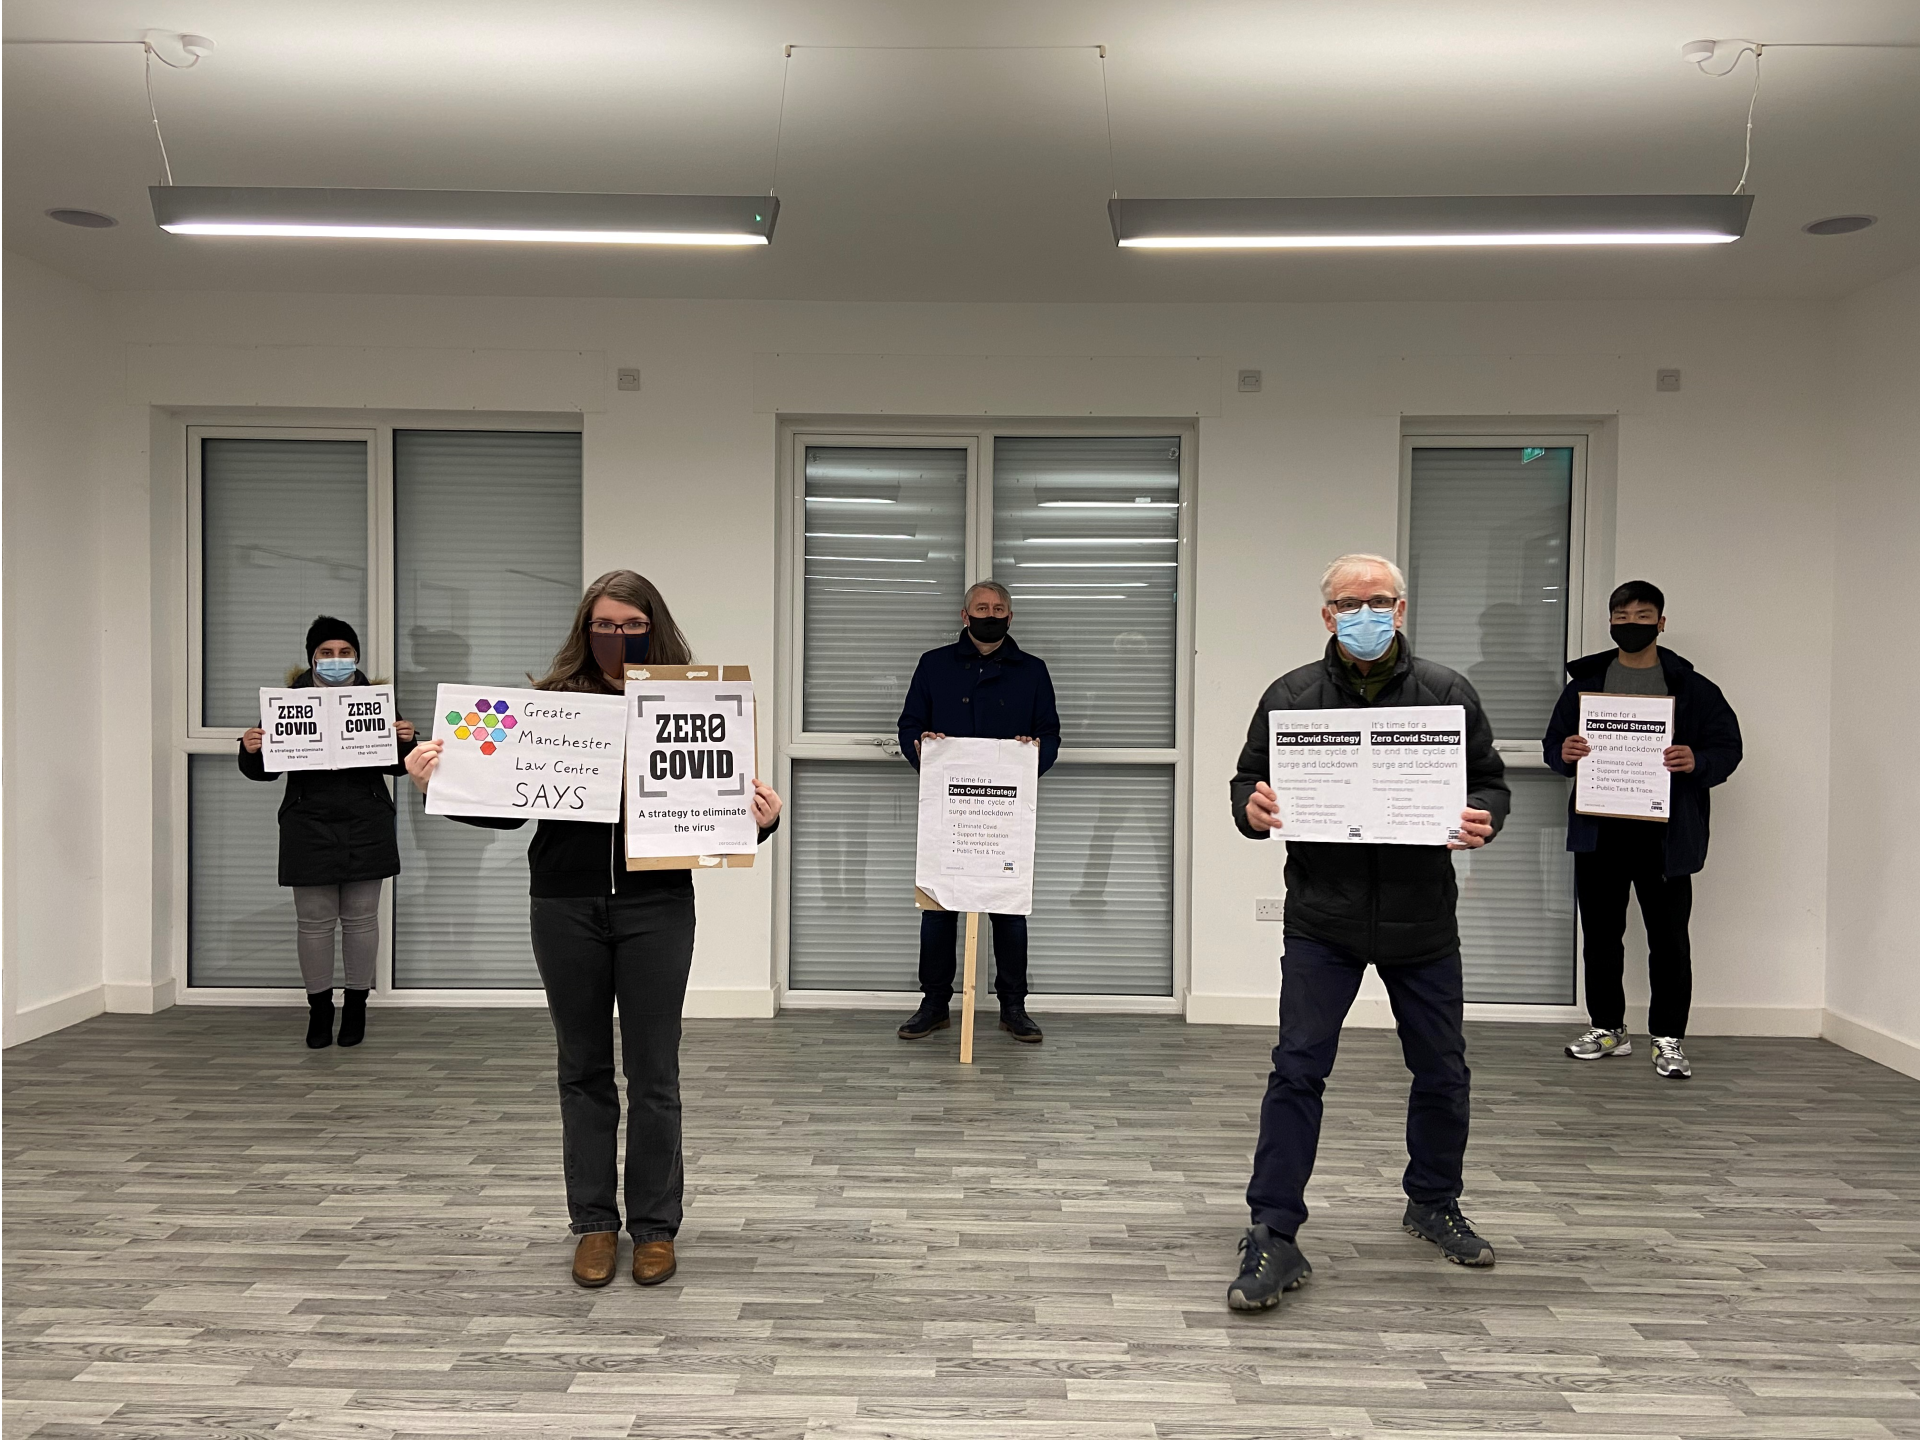 Image shows 5 people, inside a hall wearing masks and at 2m social distance, holding up Zero Covid placards.